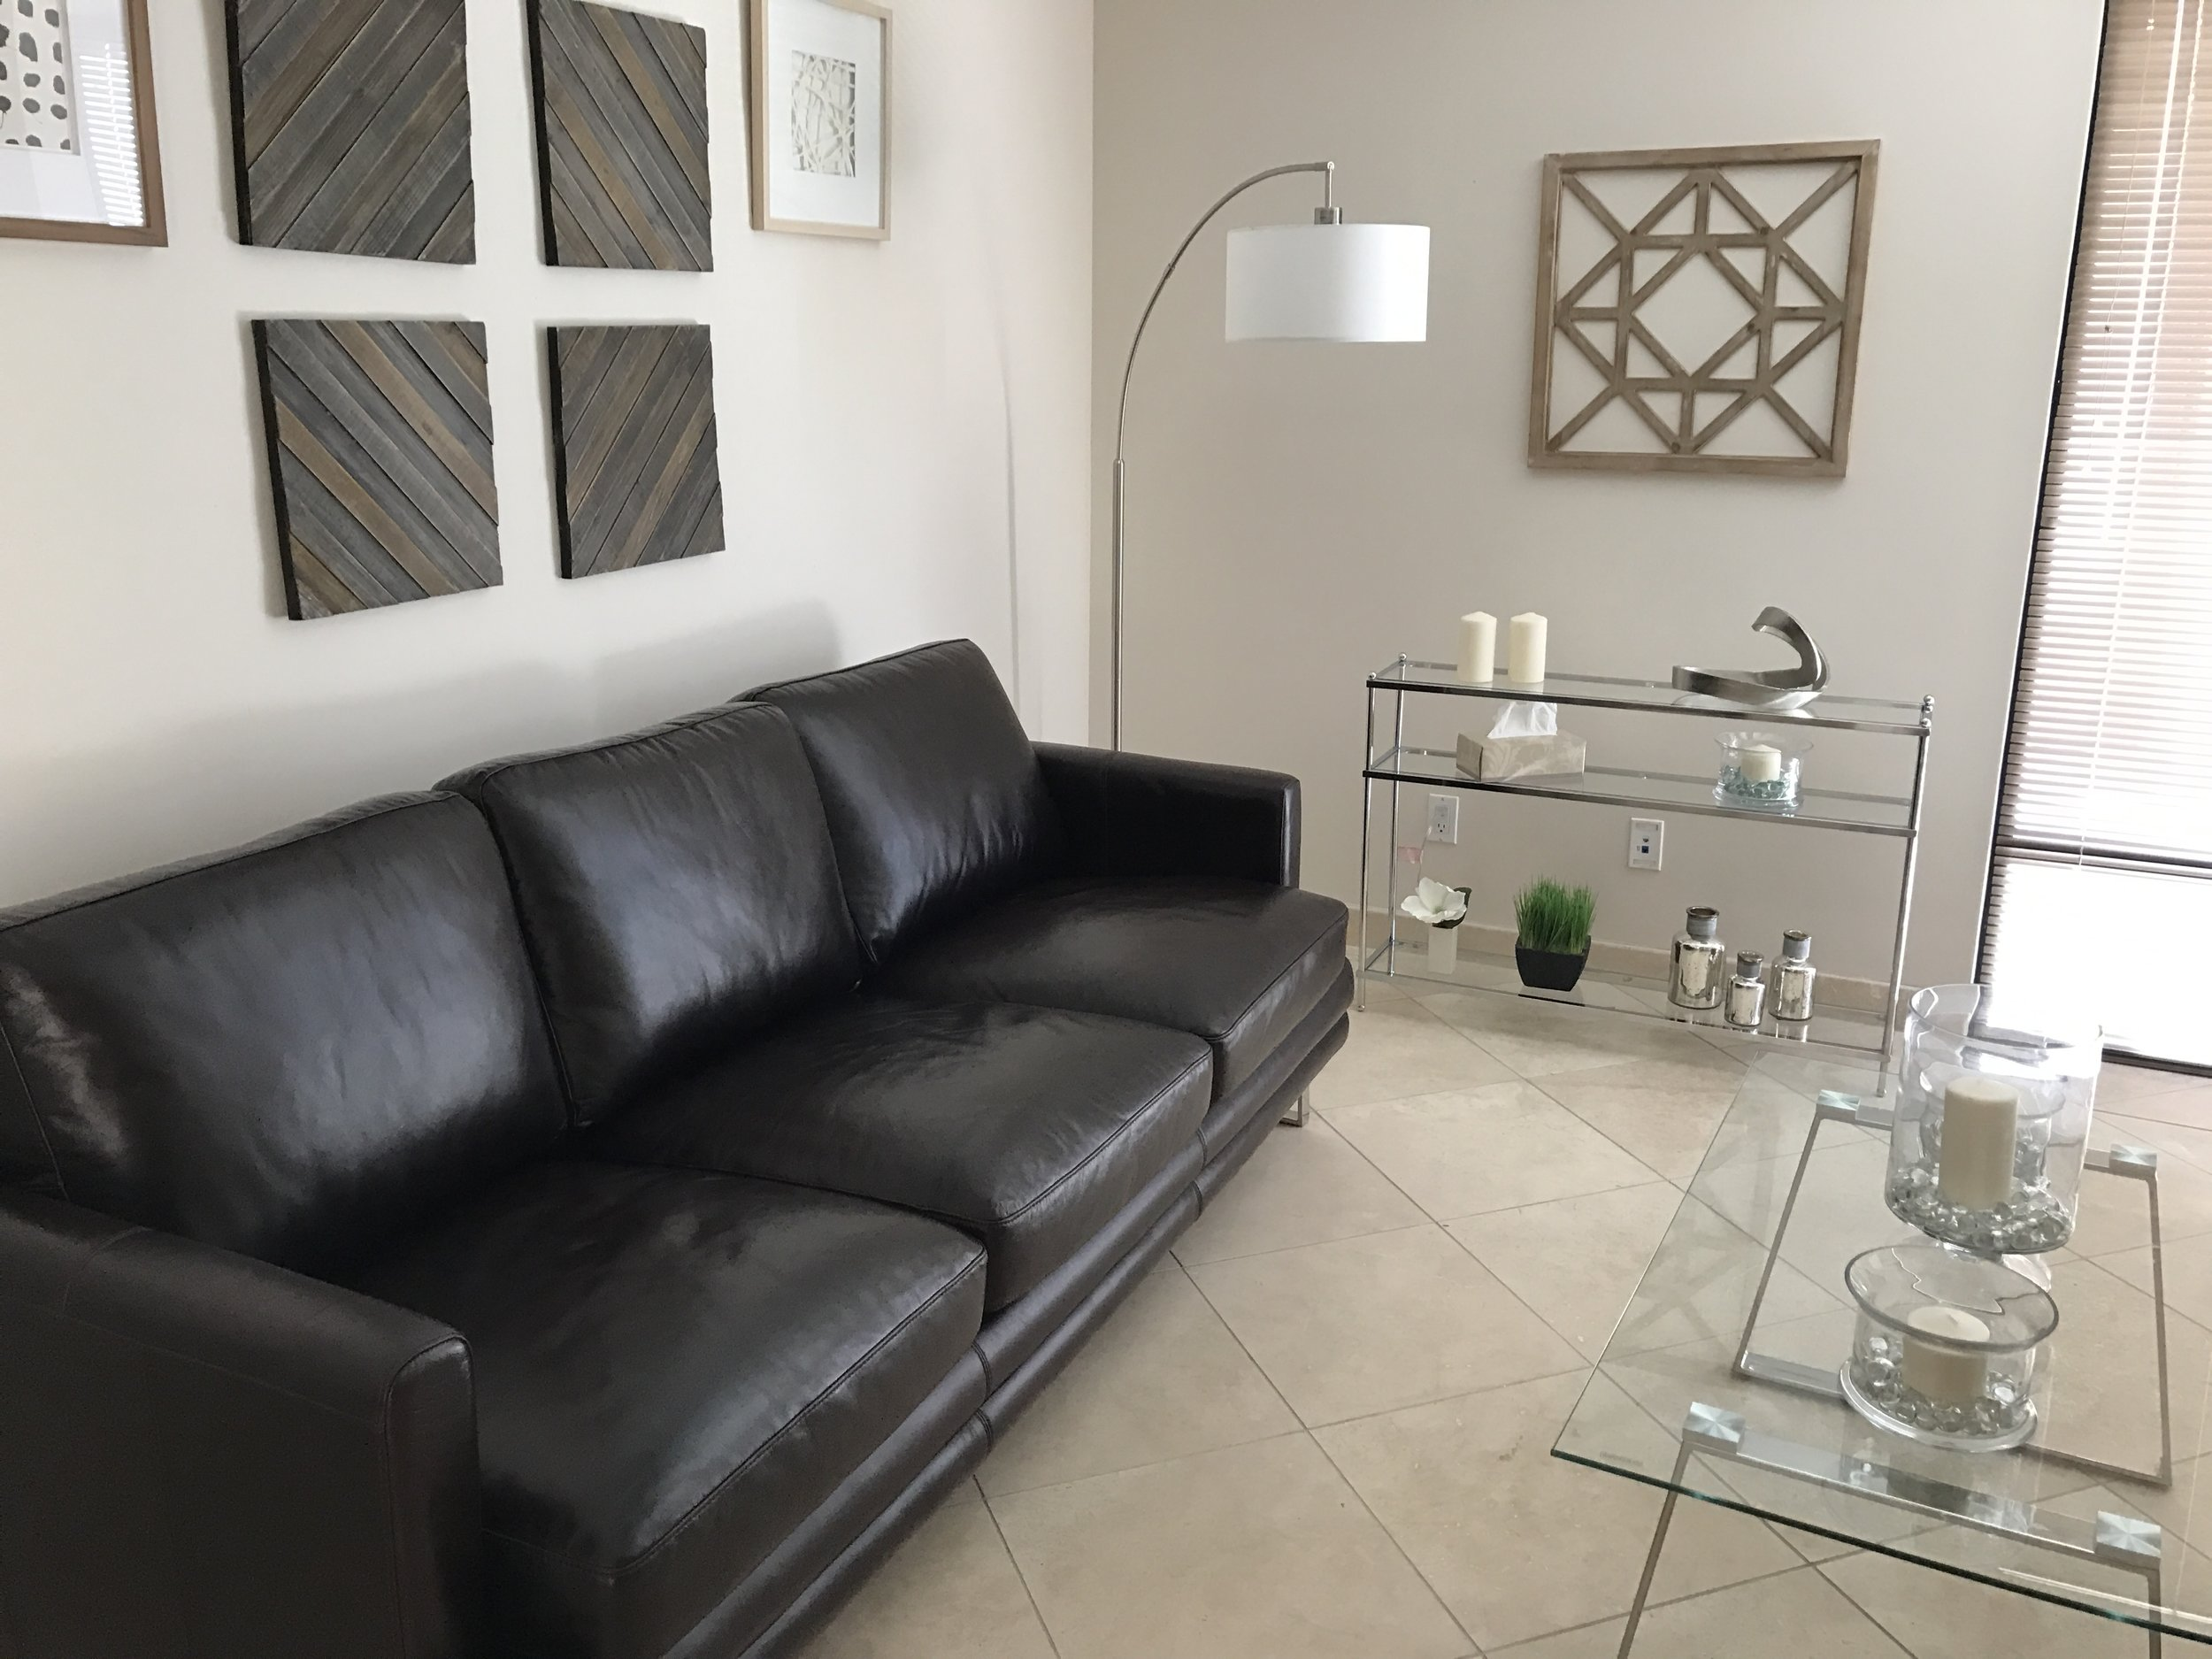 Tucson psychiatrist office couch and glass tables